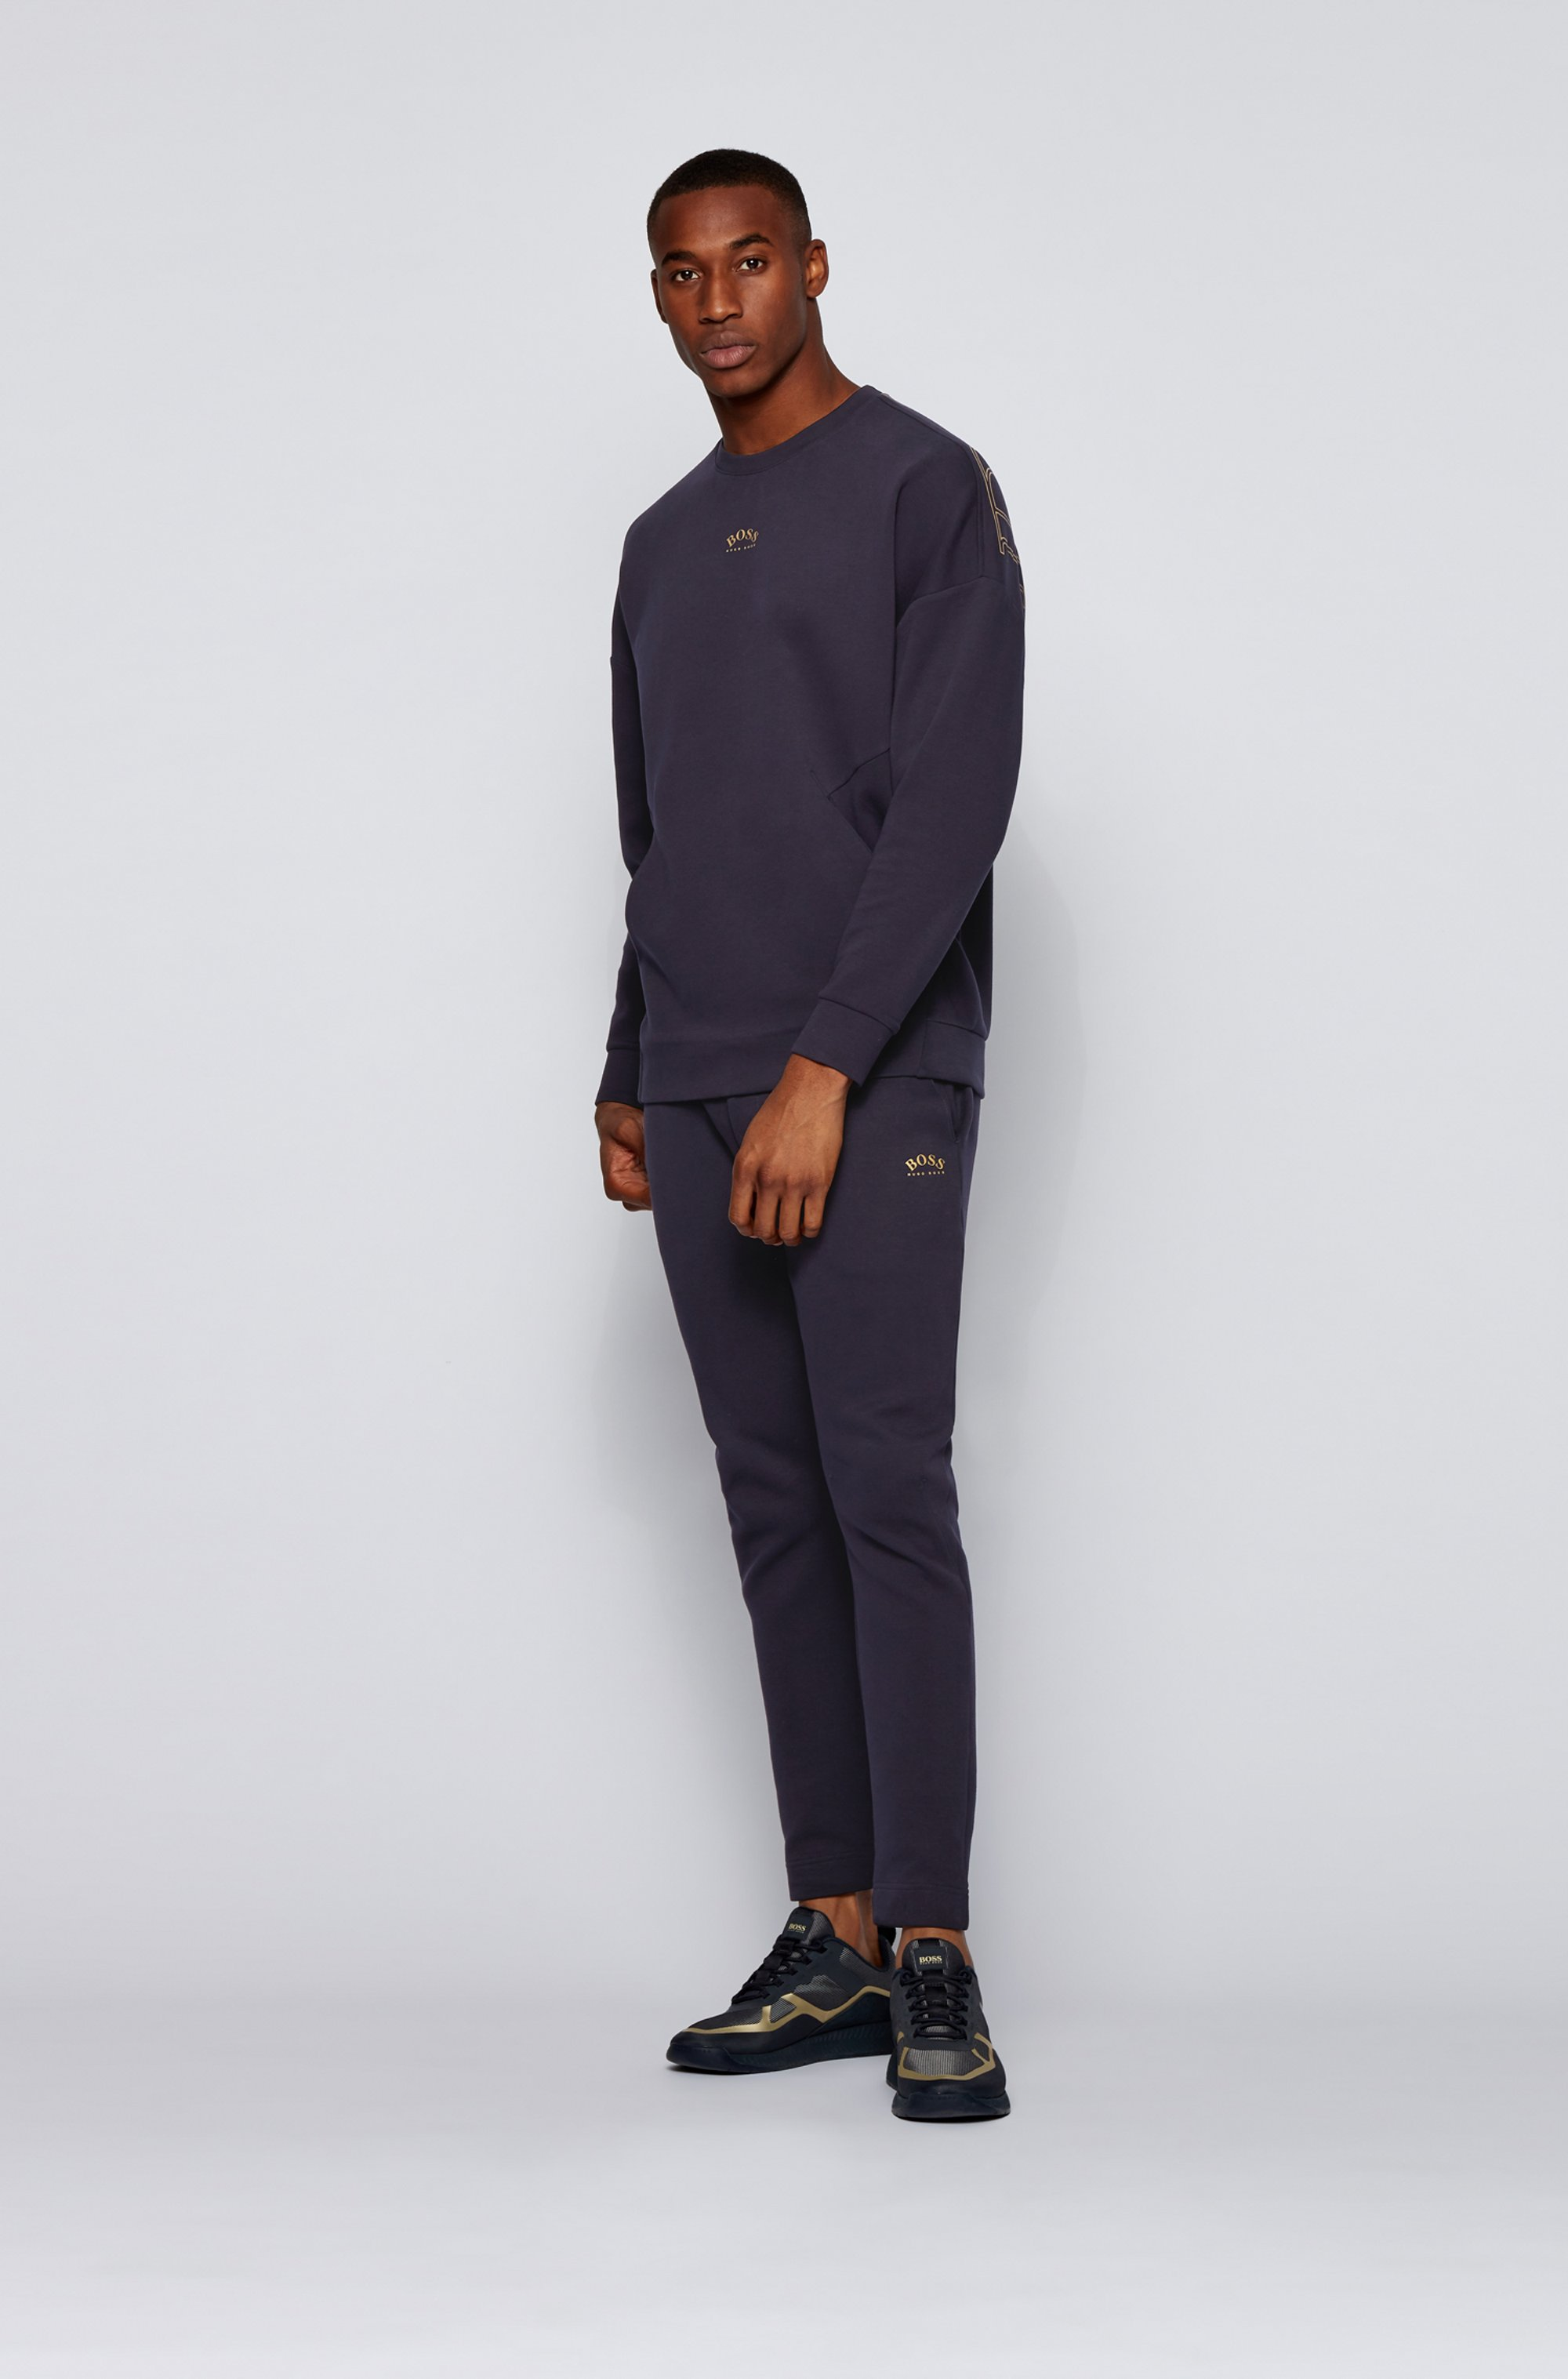 Cotton-blend relaxed-fit sweatshirt with curved-logo print